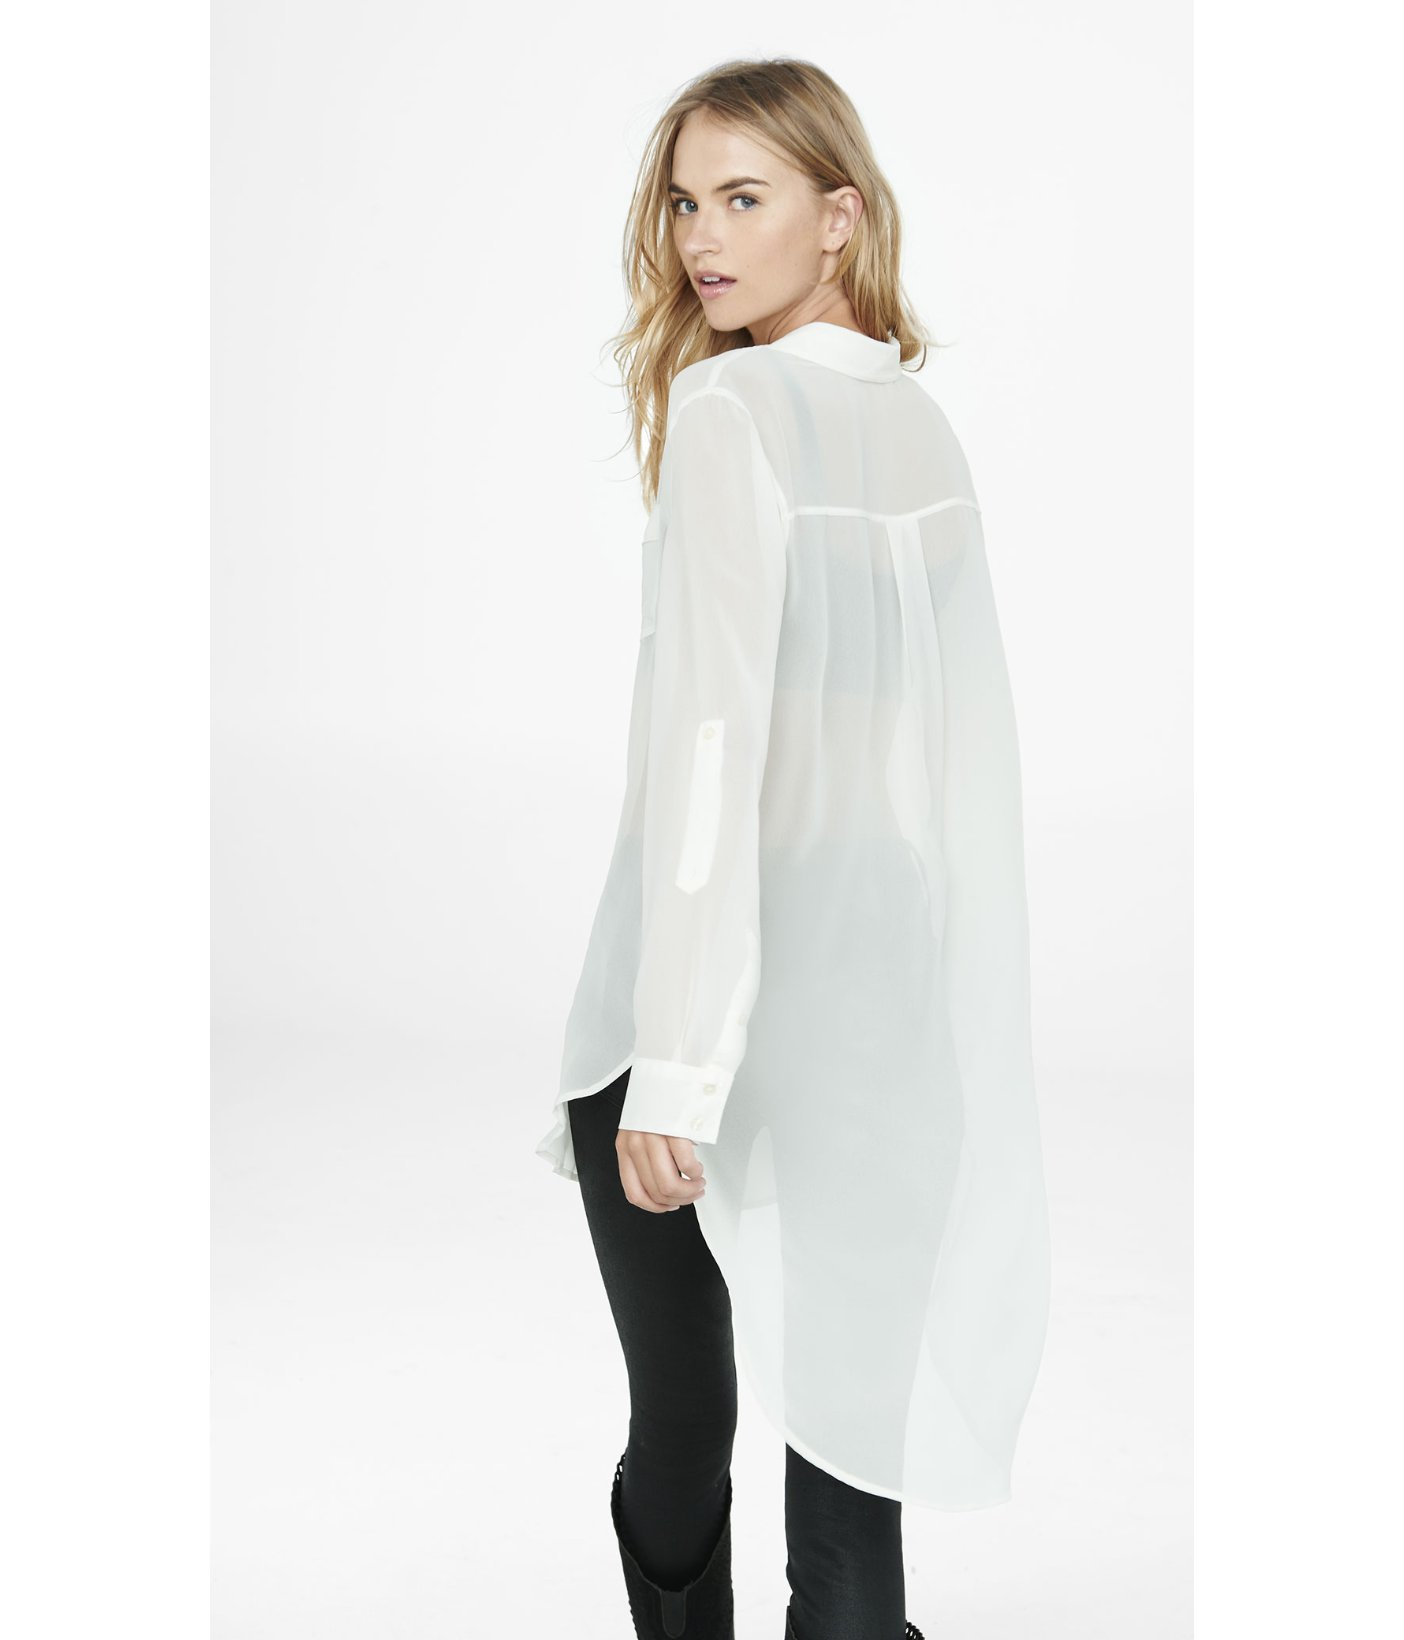 c904a147809 Express Sheer Chiffon Tunic Blouse in White - Lyst